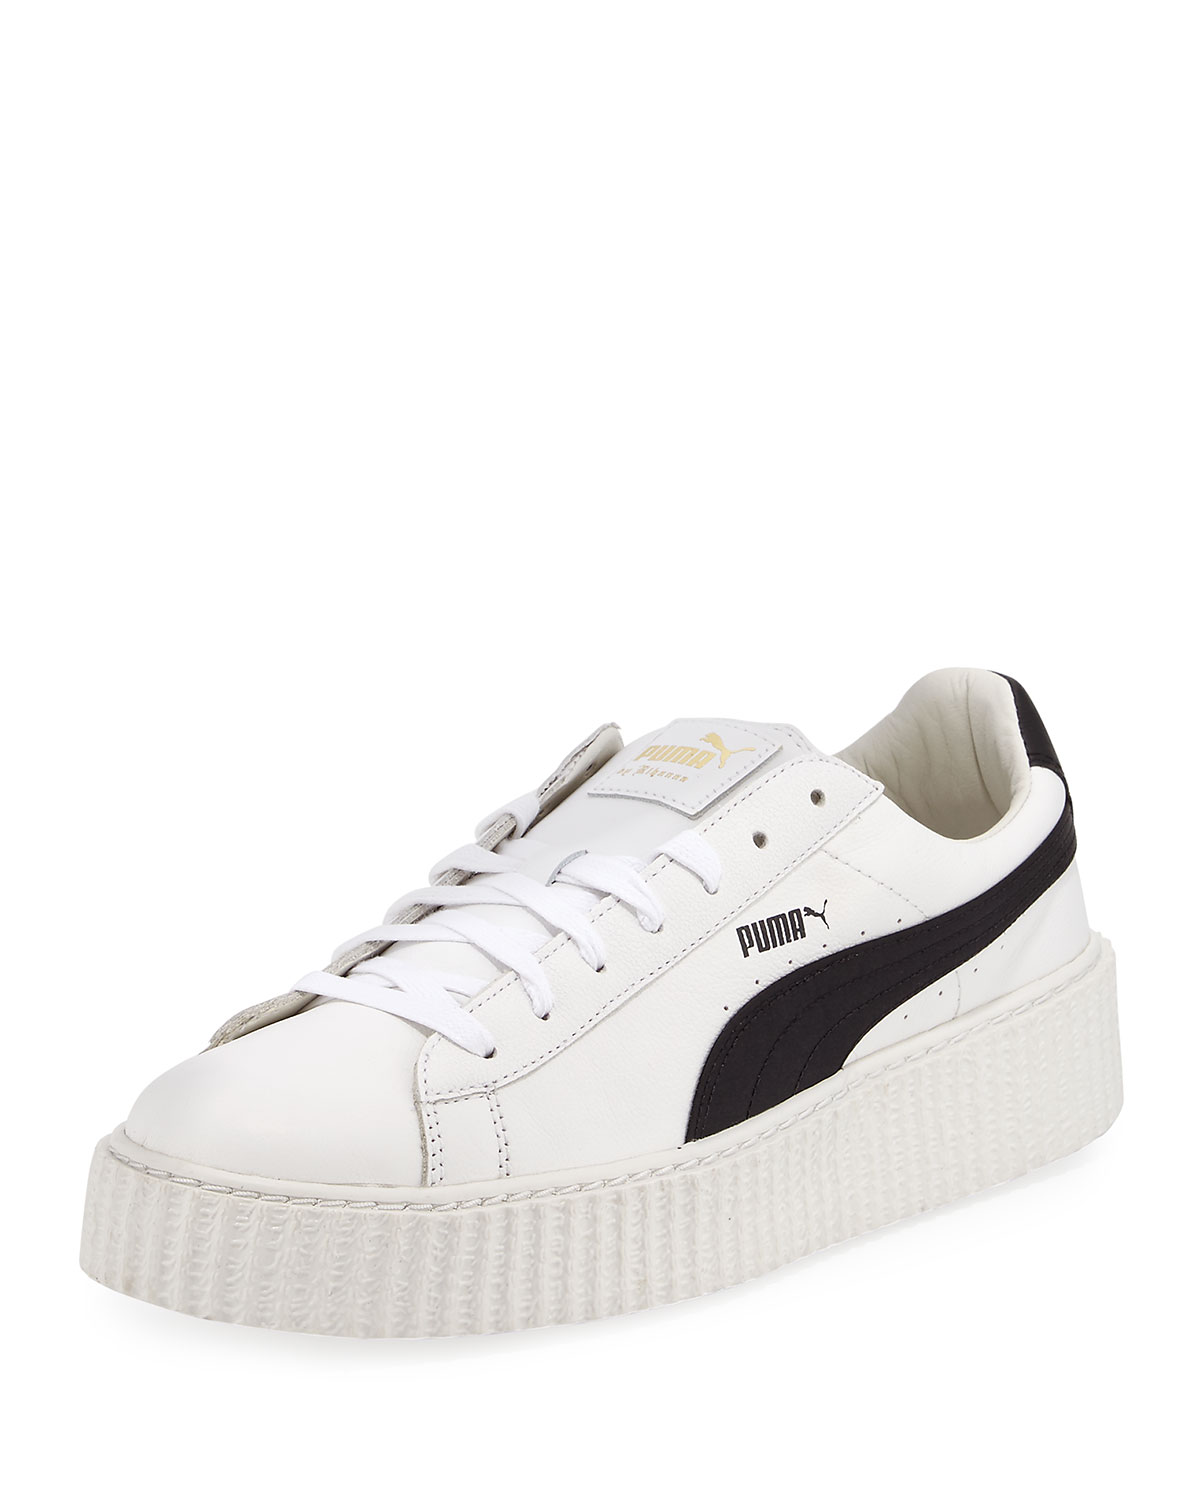 meet effda e5728 x Fenty Puma by Rihanna Men's Cracked Leather Creeper Sneakers, White